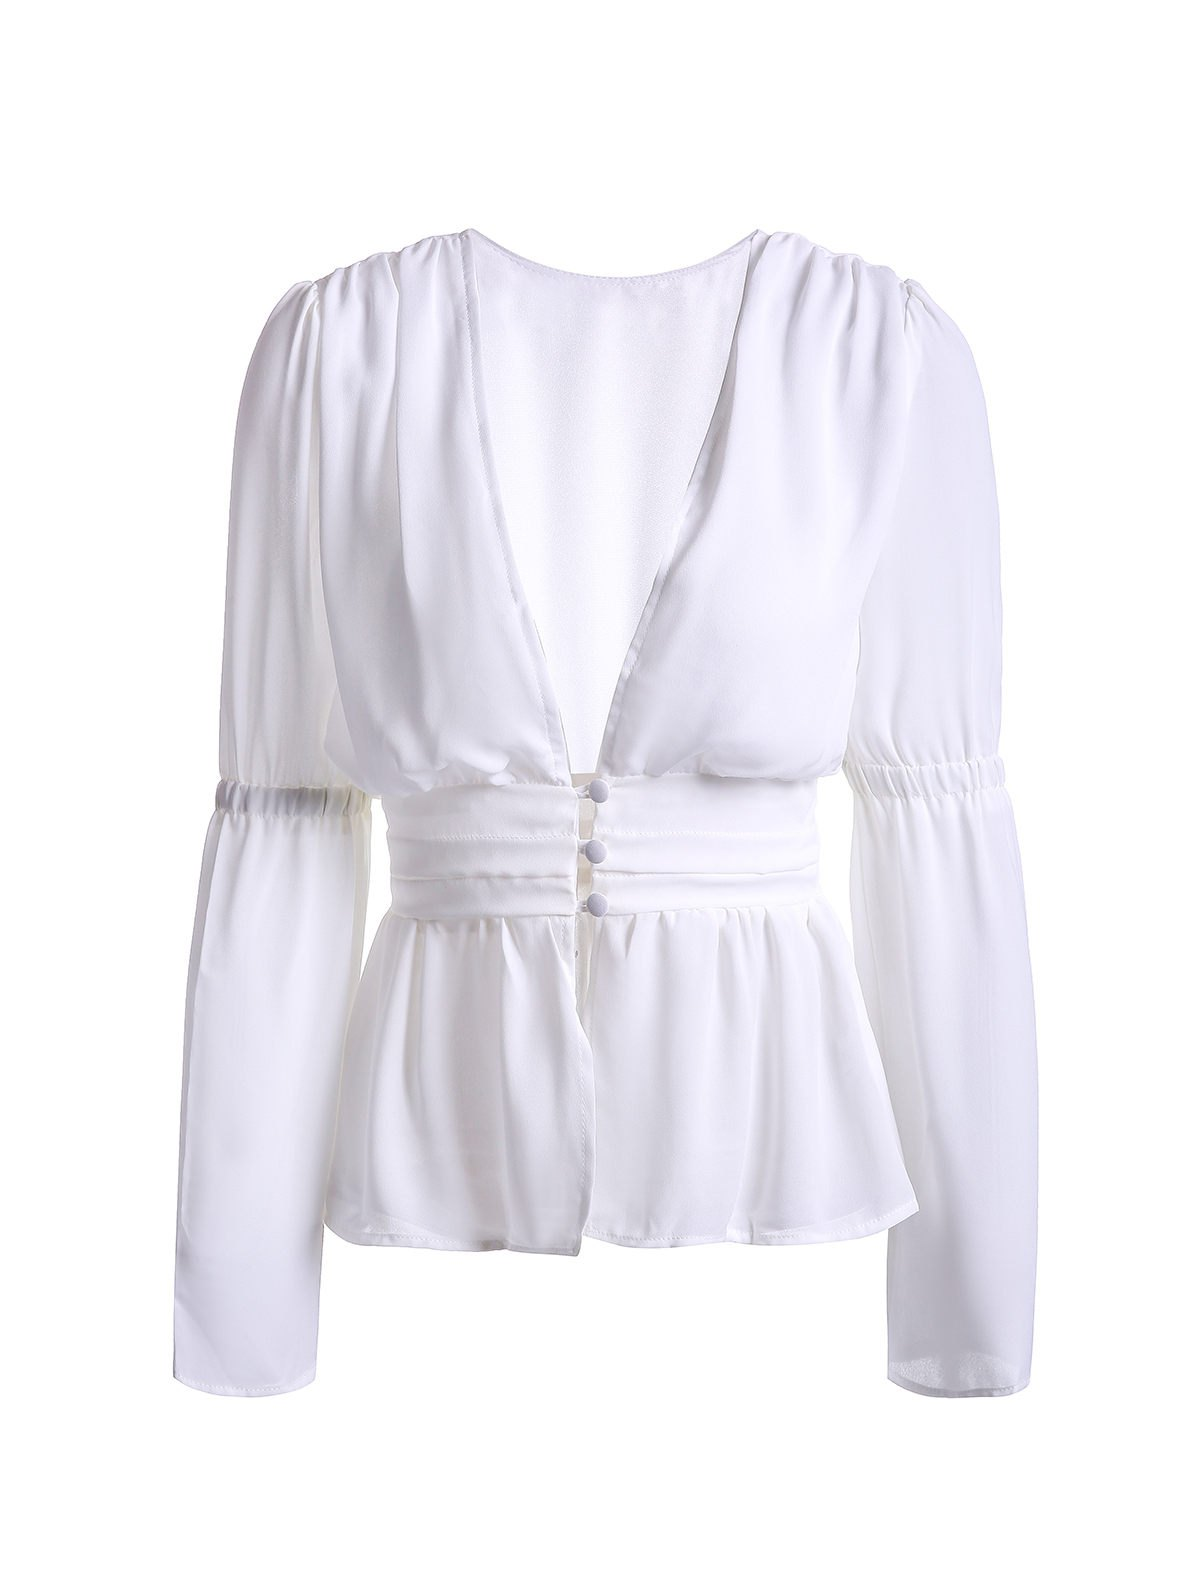 Trendy Plunging Neckline White See-Through Women's Blouse - WHITE S